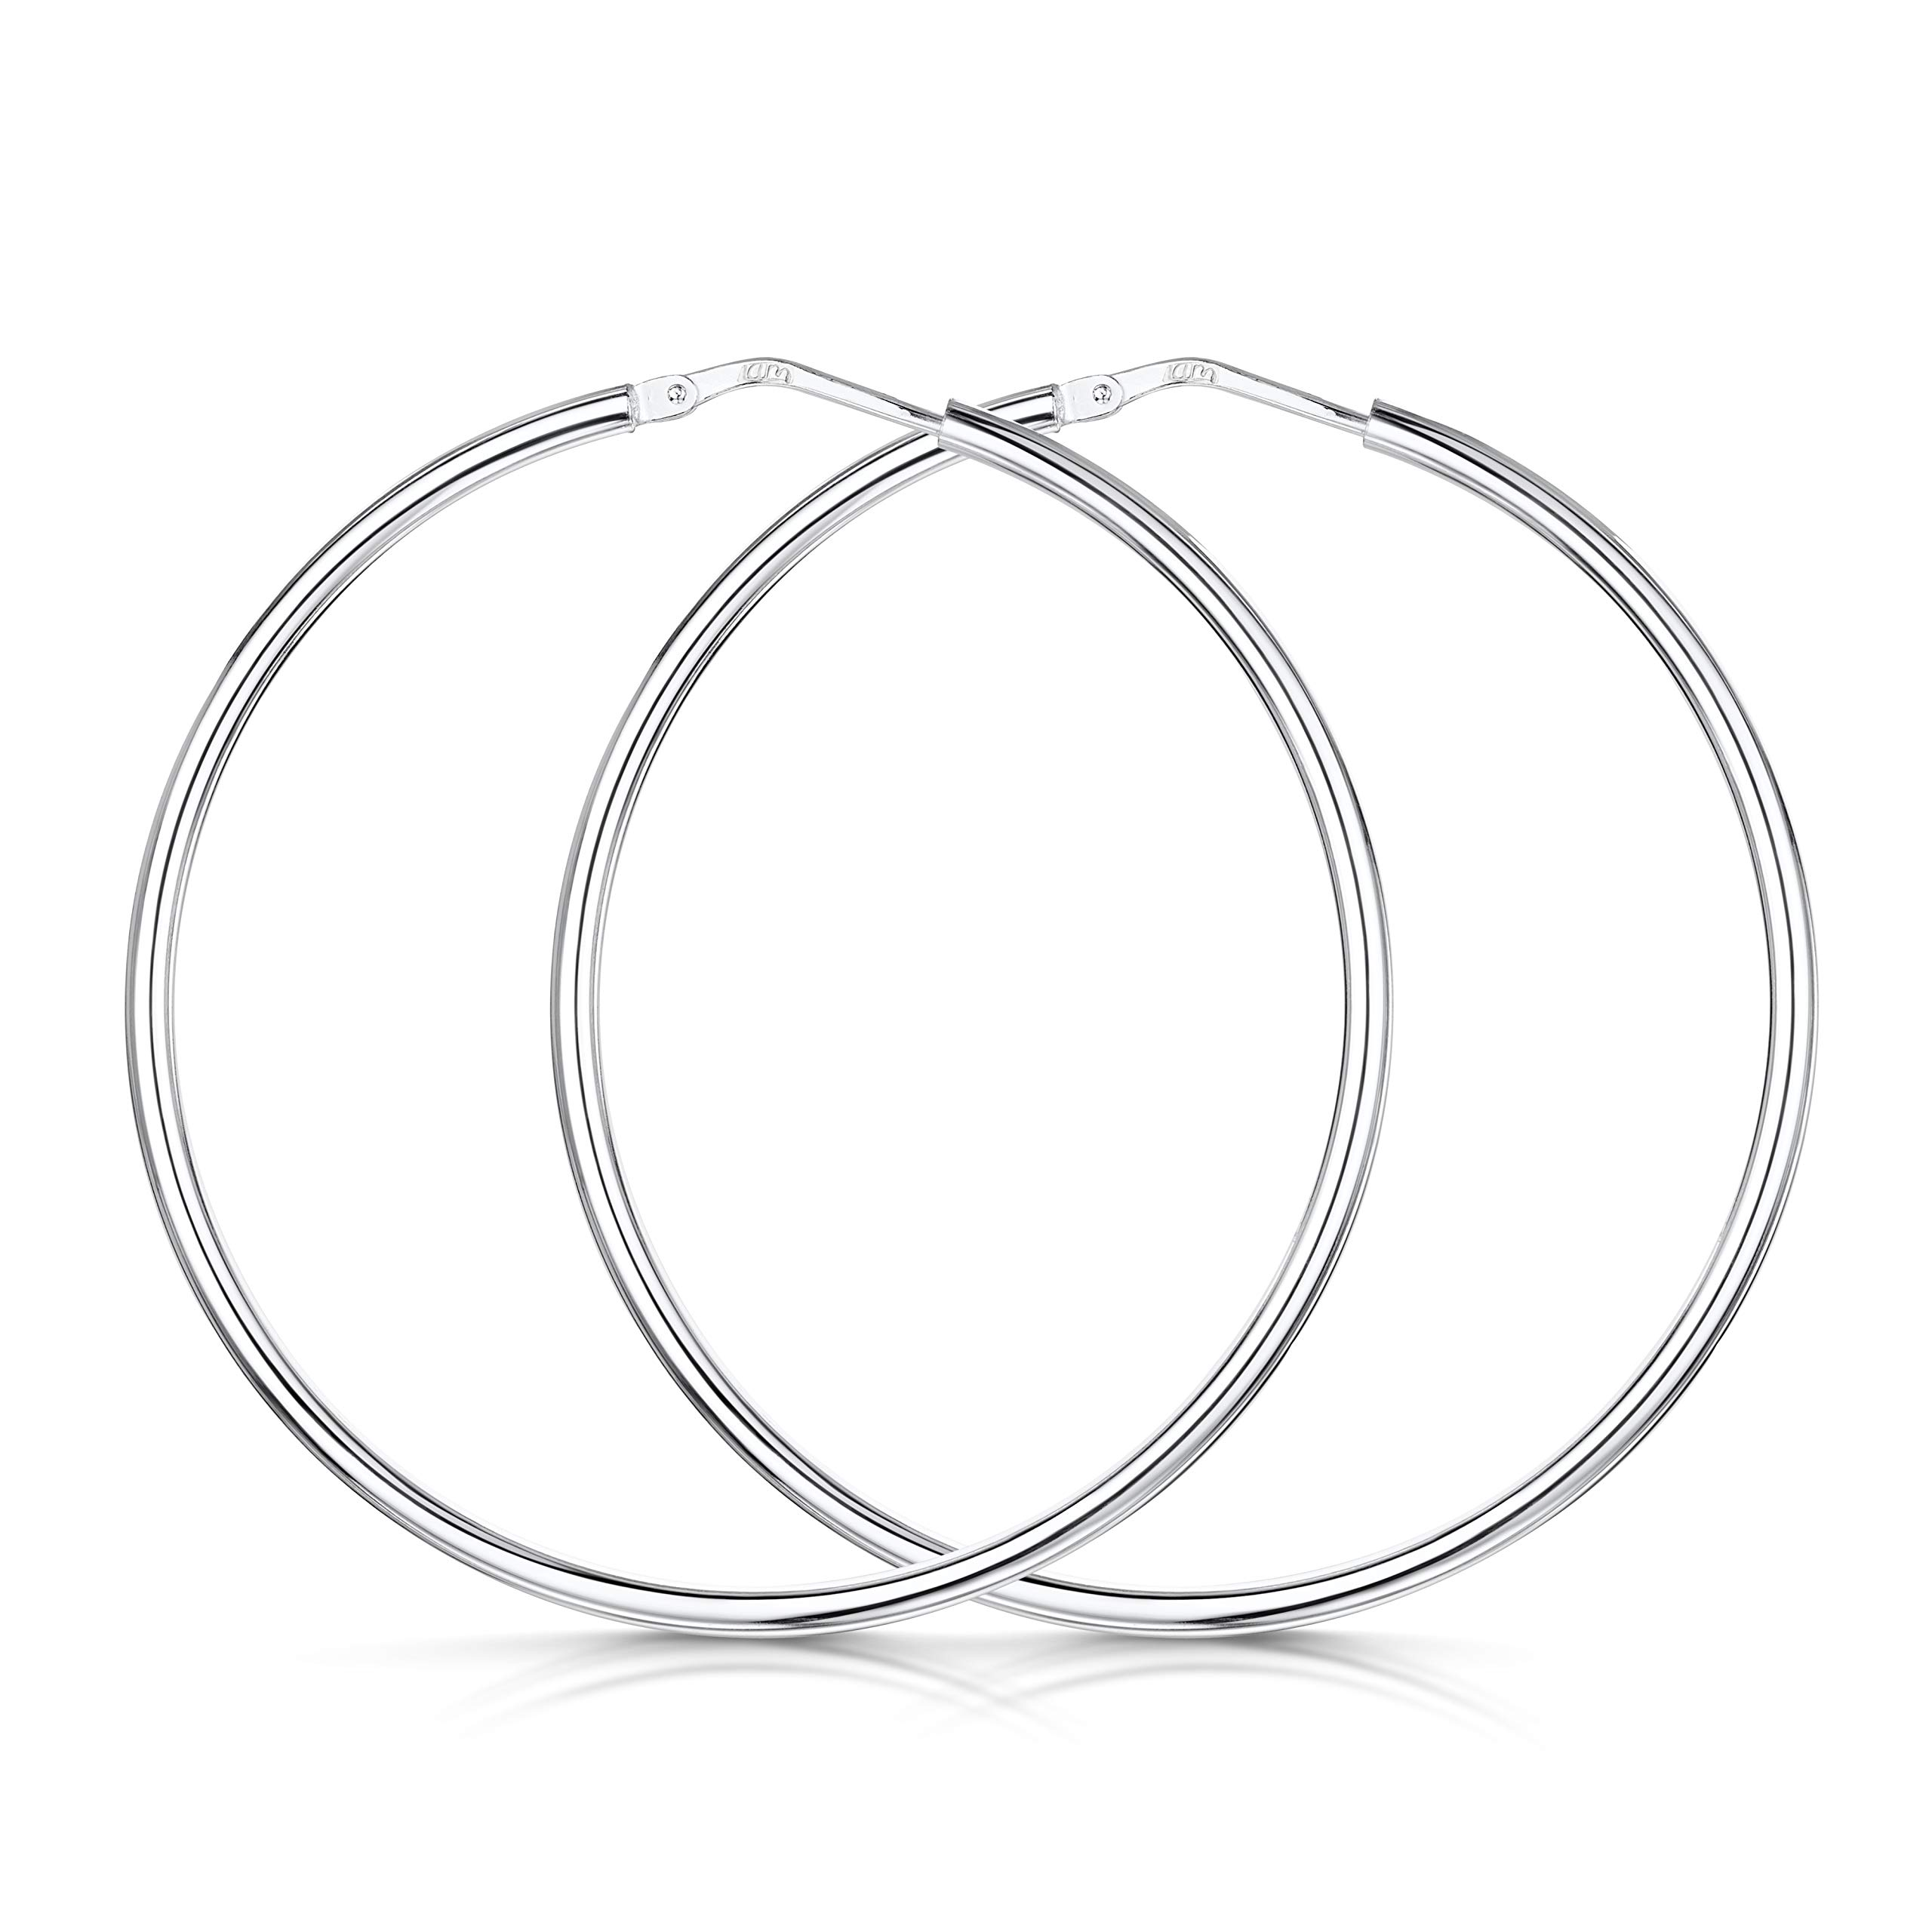 53bf3875fea2 Amberta® 925 Sterling Silver Fine Circle Hinged Hoops - Round Creole  Sleeper Earrings Diameter Size  7 10 15 20 25 35 45 55 mm